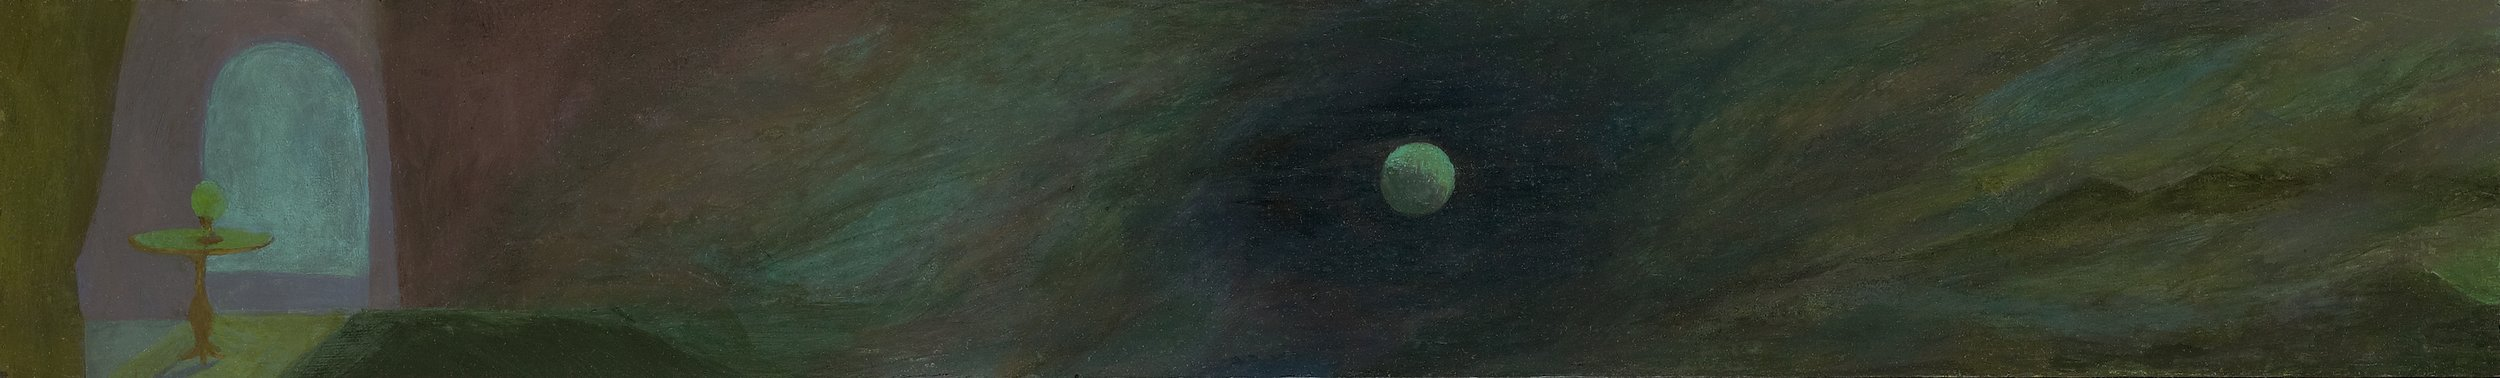 Inner/Outer Space , circa 1943  oil on board 6 x 39 inches; 15.2 x 99.1 centimeters  $40,000